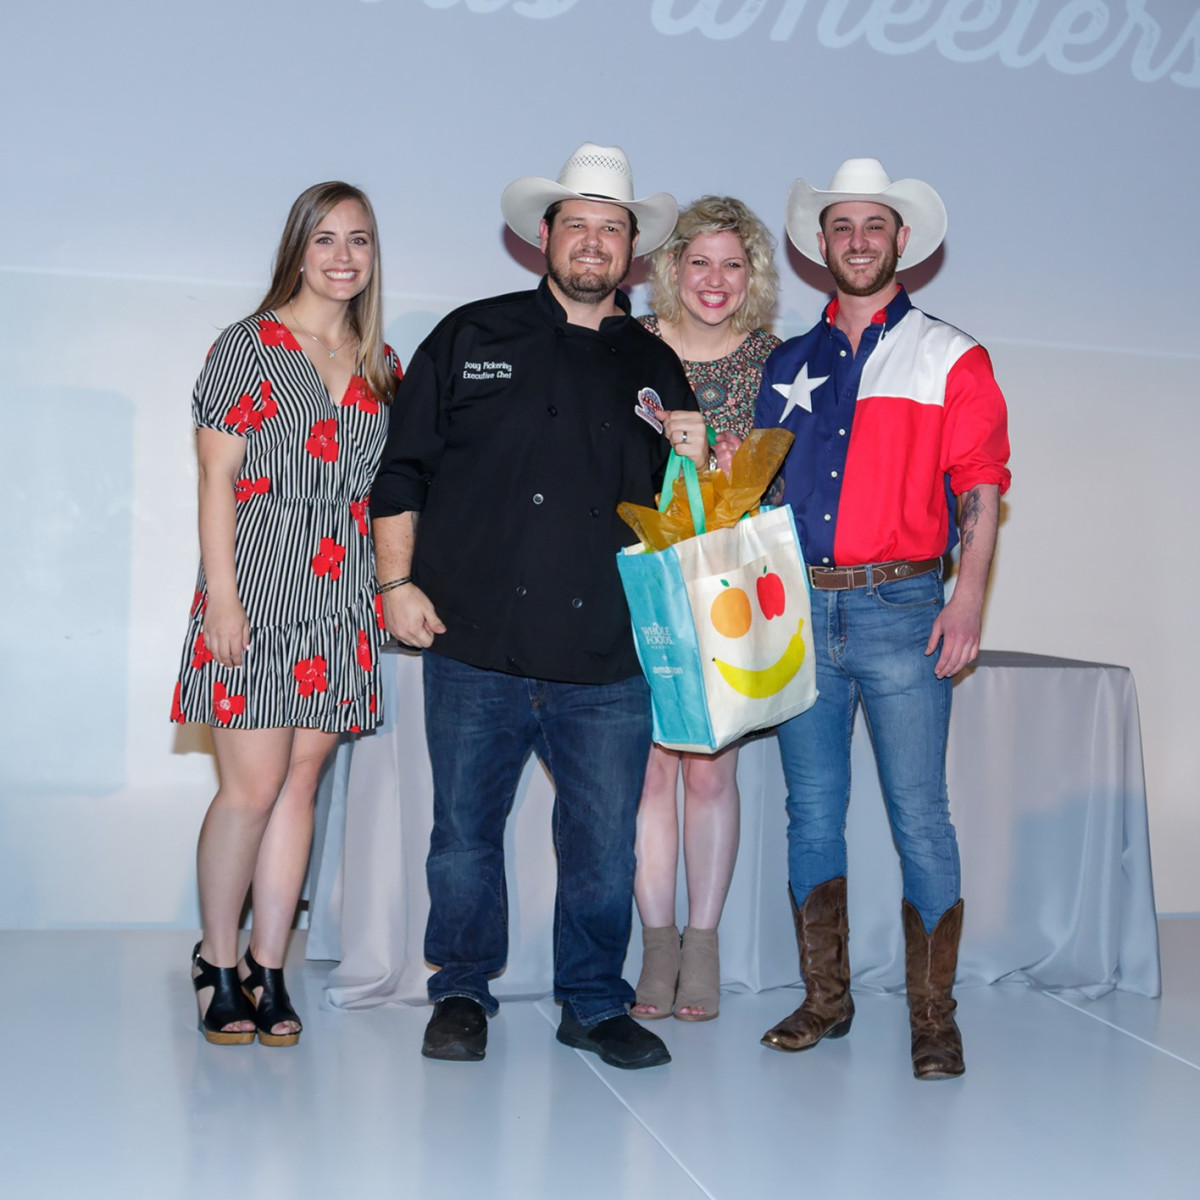 Dallas Tastemaker Awards 2018, Ferris Wheelers, Best New Restaurant Dallas